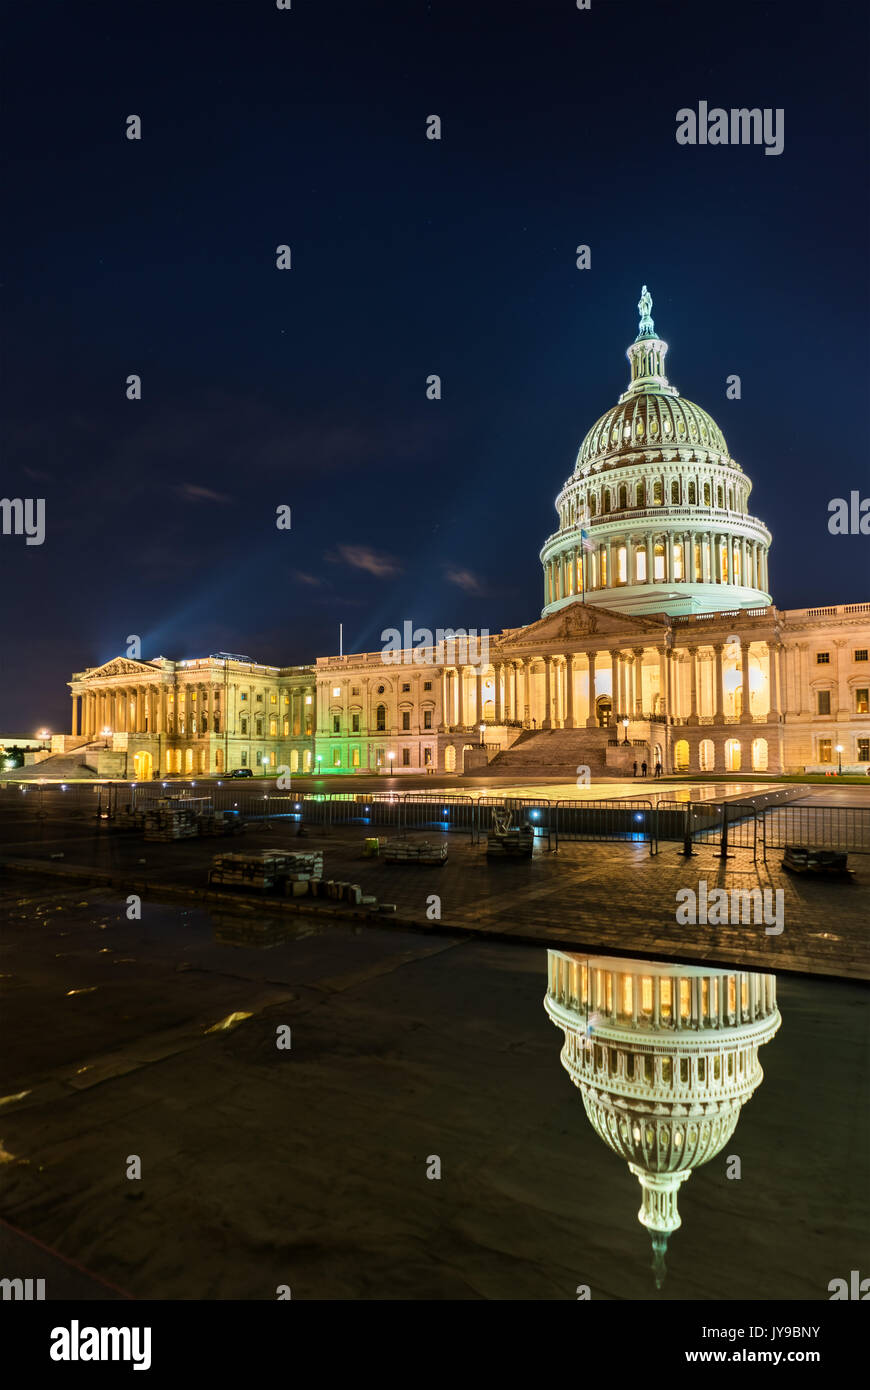 The United States Capitol Building at night in Washington, DC - Stock Image